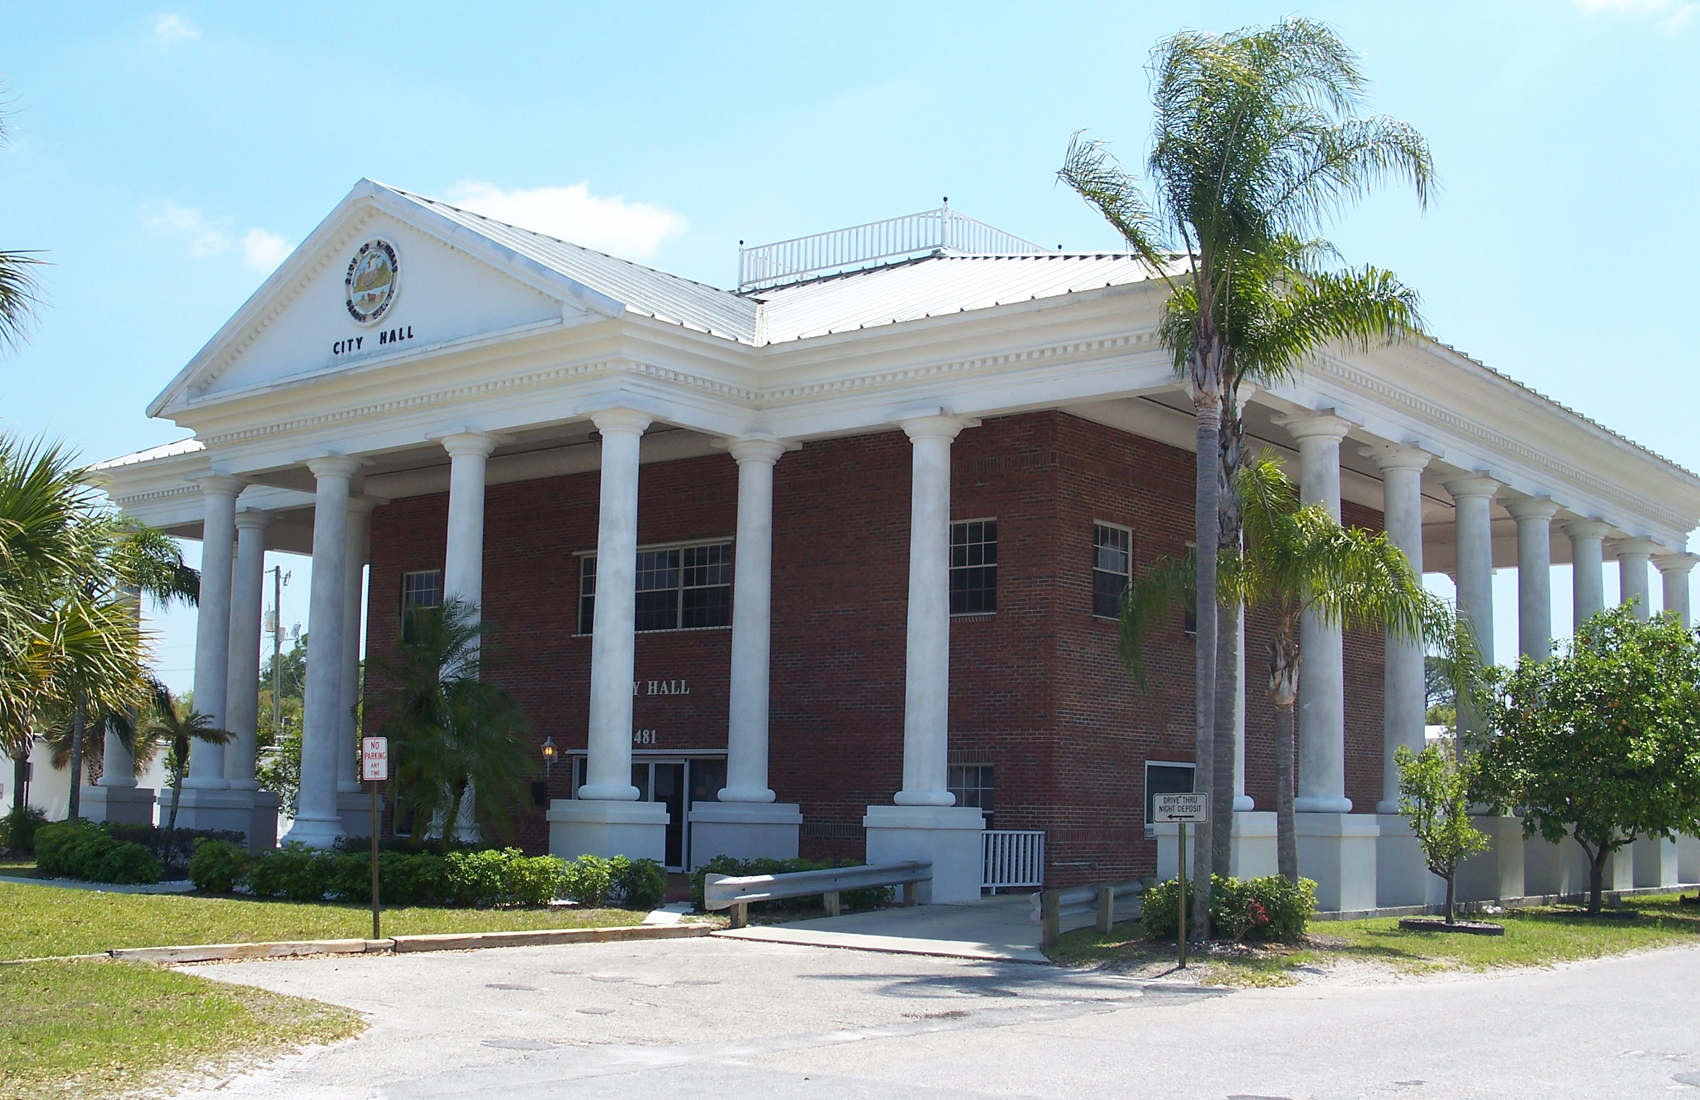 slideshow of City Hall in LaBelle, FL